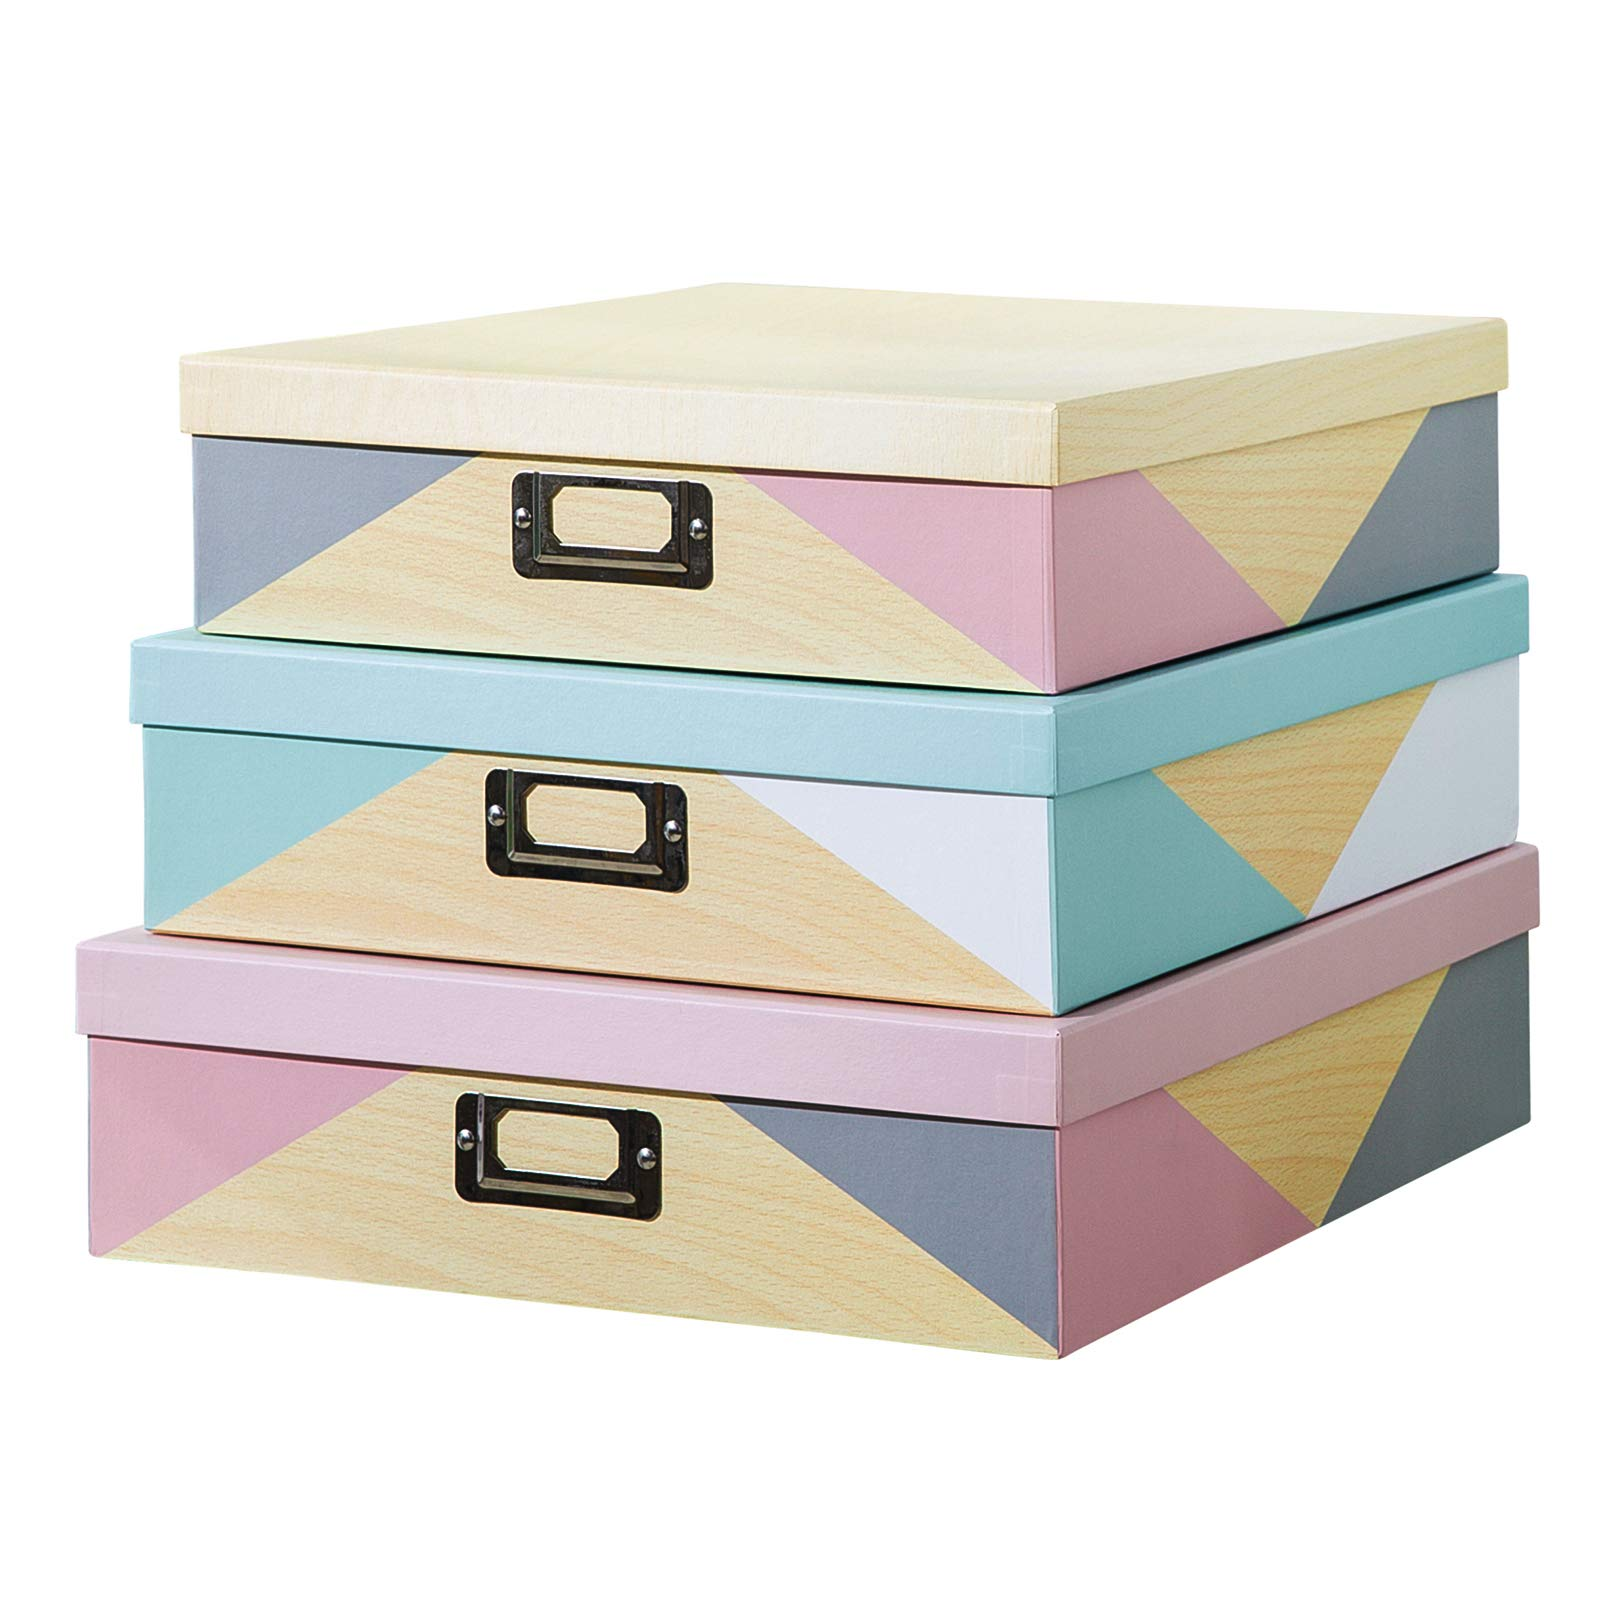 SLPR Decorative Storage Cardboard Boxes with Metal Plate (Set of 3, Nordic Triangles) | Nesting Gift Boxes with Lid for Keepsake Toys Photos Memories Closet Nursery Office Bedroom Decoration